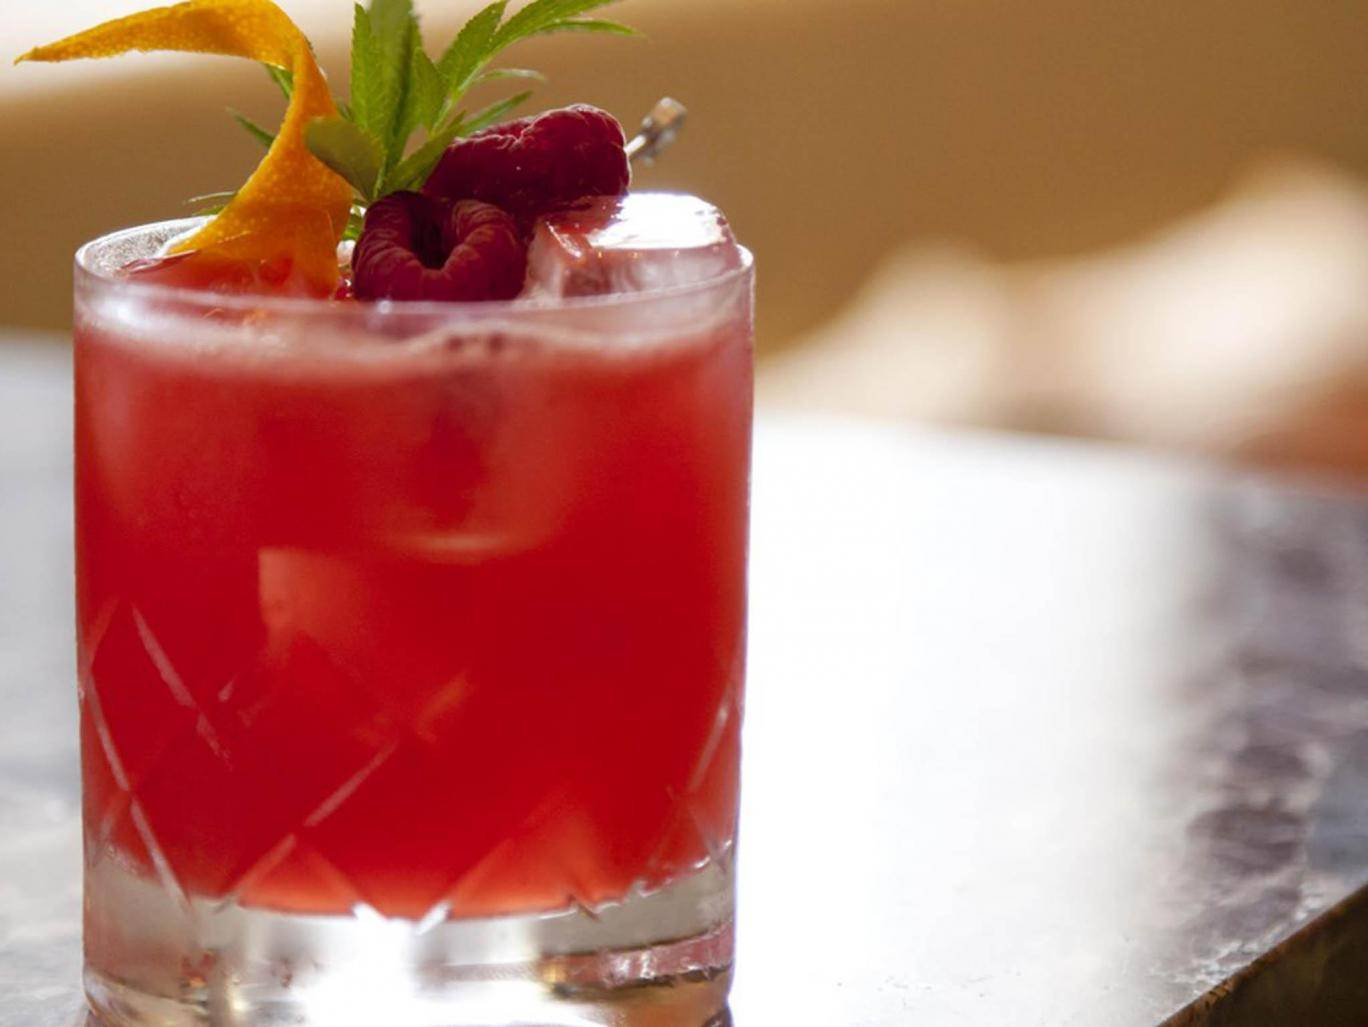 How To Make A Rosemary, Lemon, Apple And Cranberry Mocktail photo